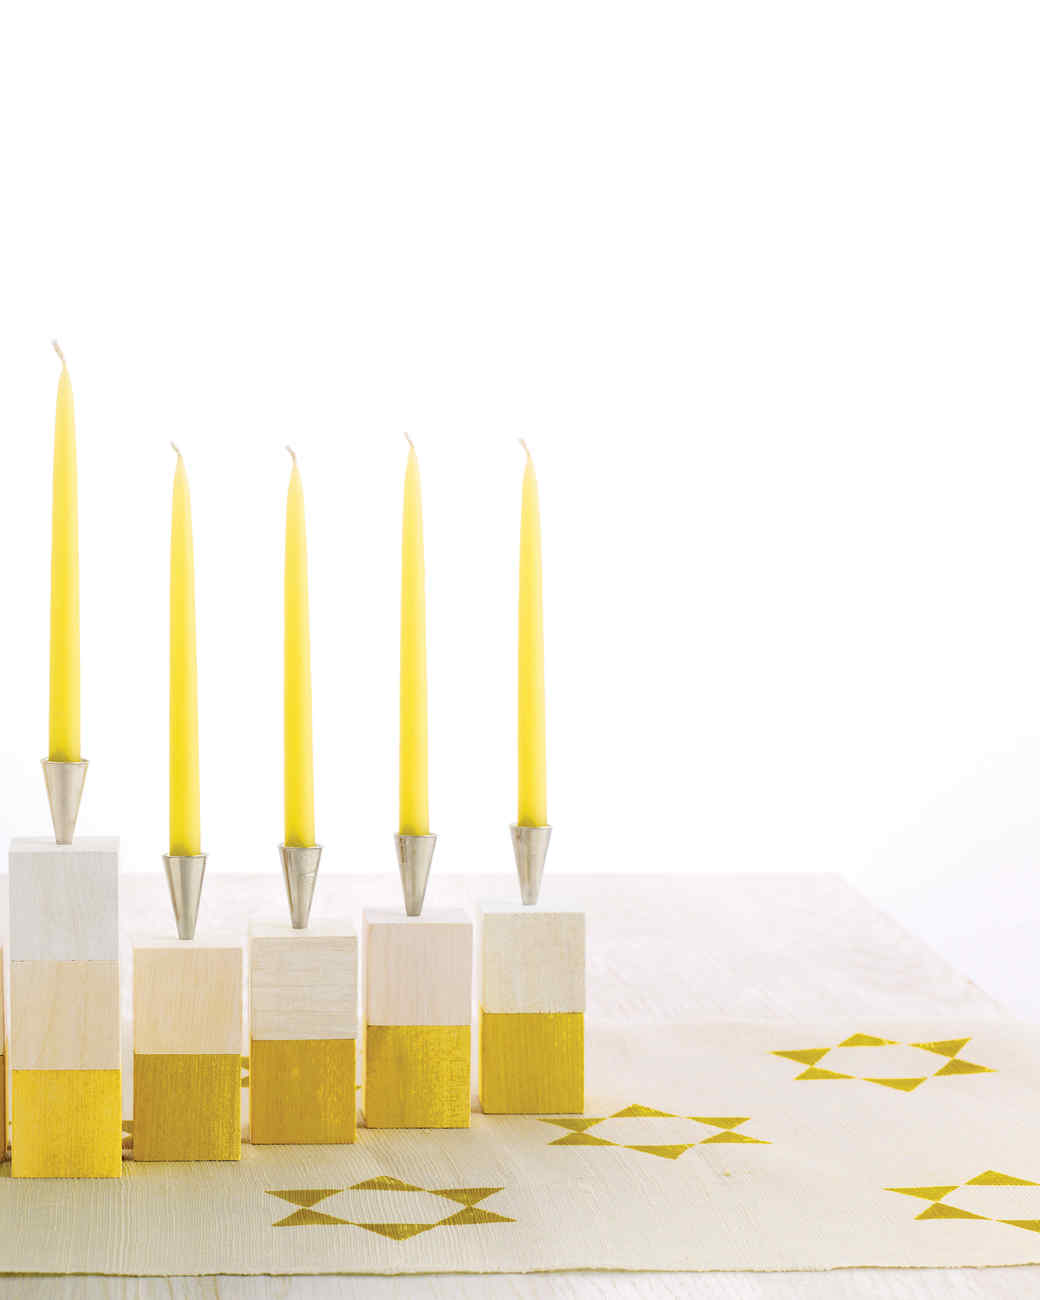 Starry Stamped Hanukkah Table Runner